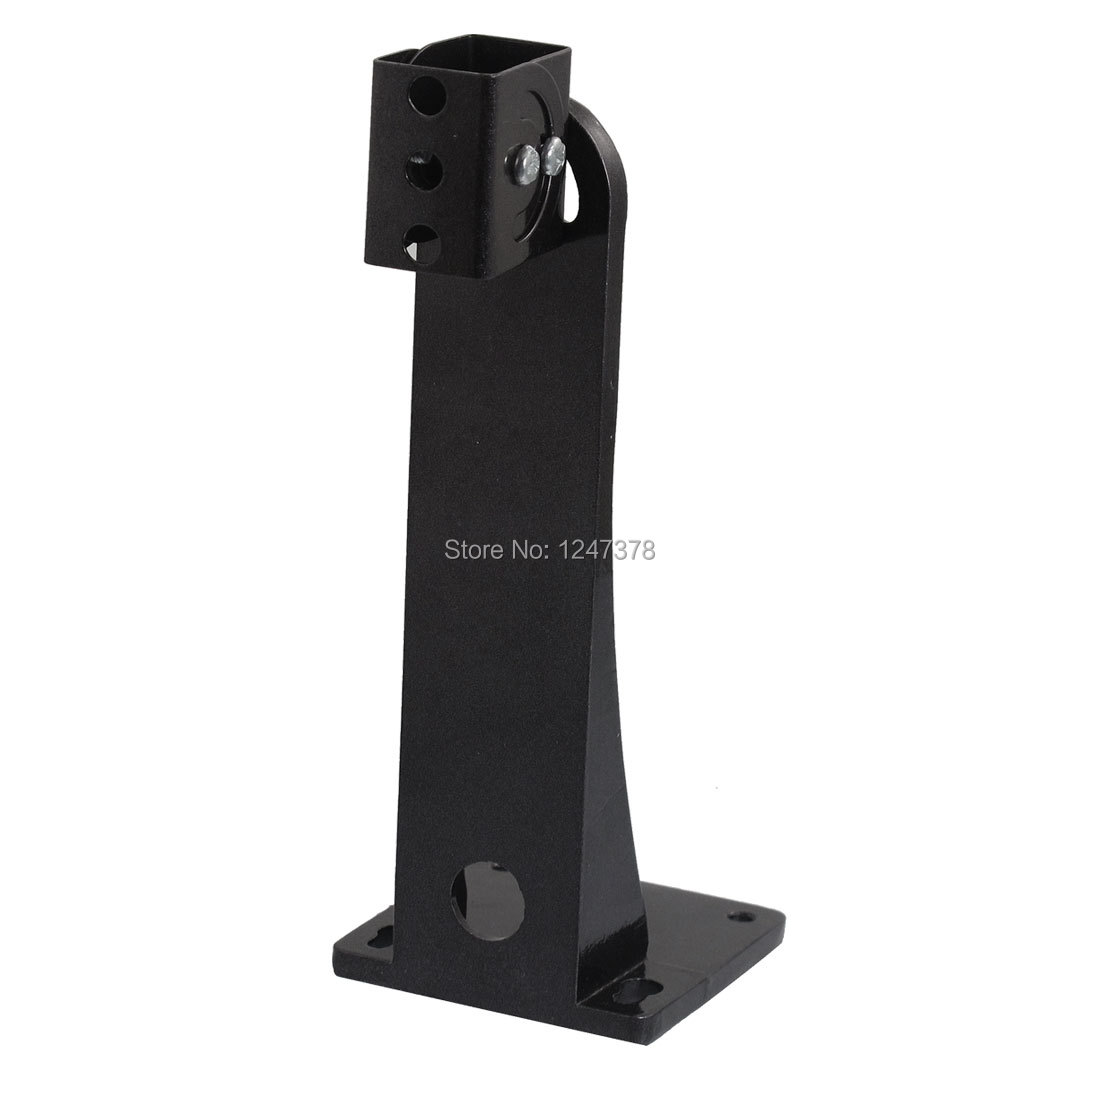 Wall Ceiling Mounting Security Metal CCTV Bracket Stand 18CM High(China (Mainland))